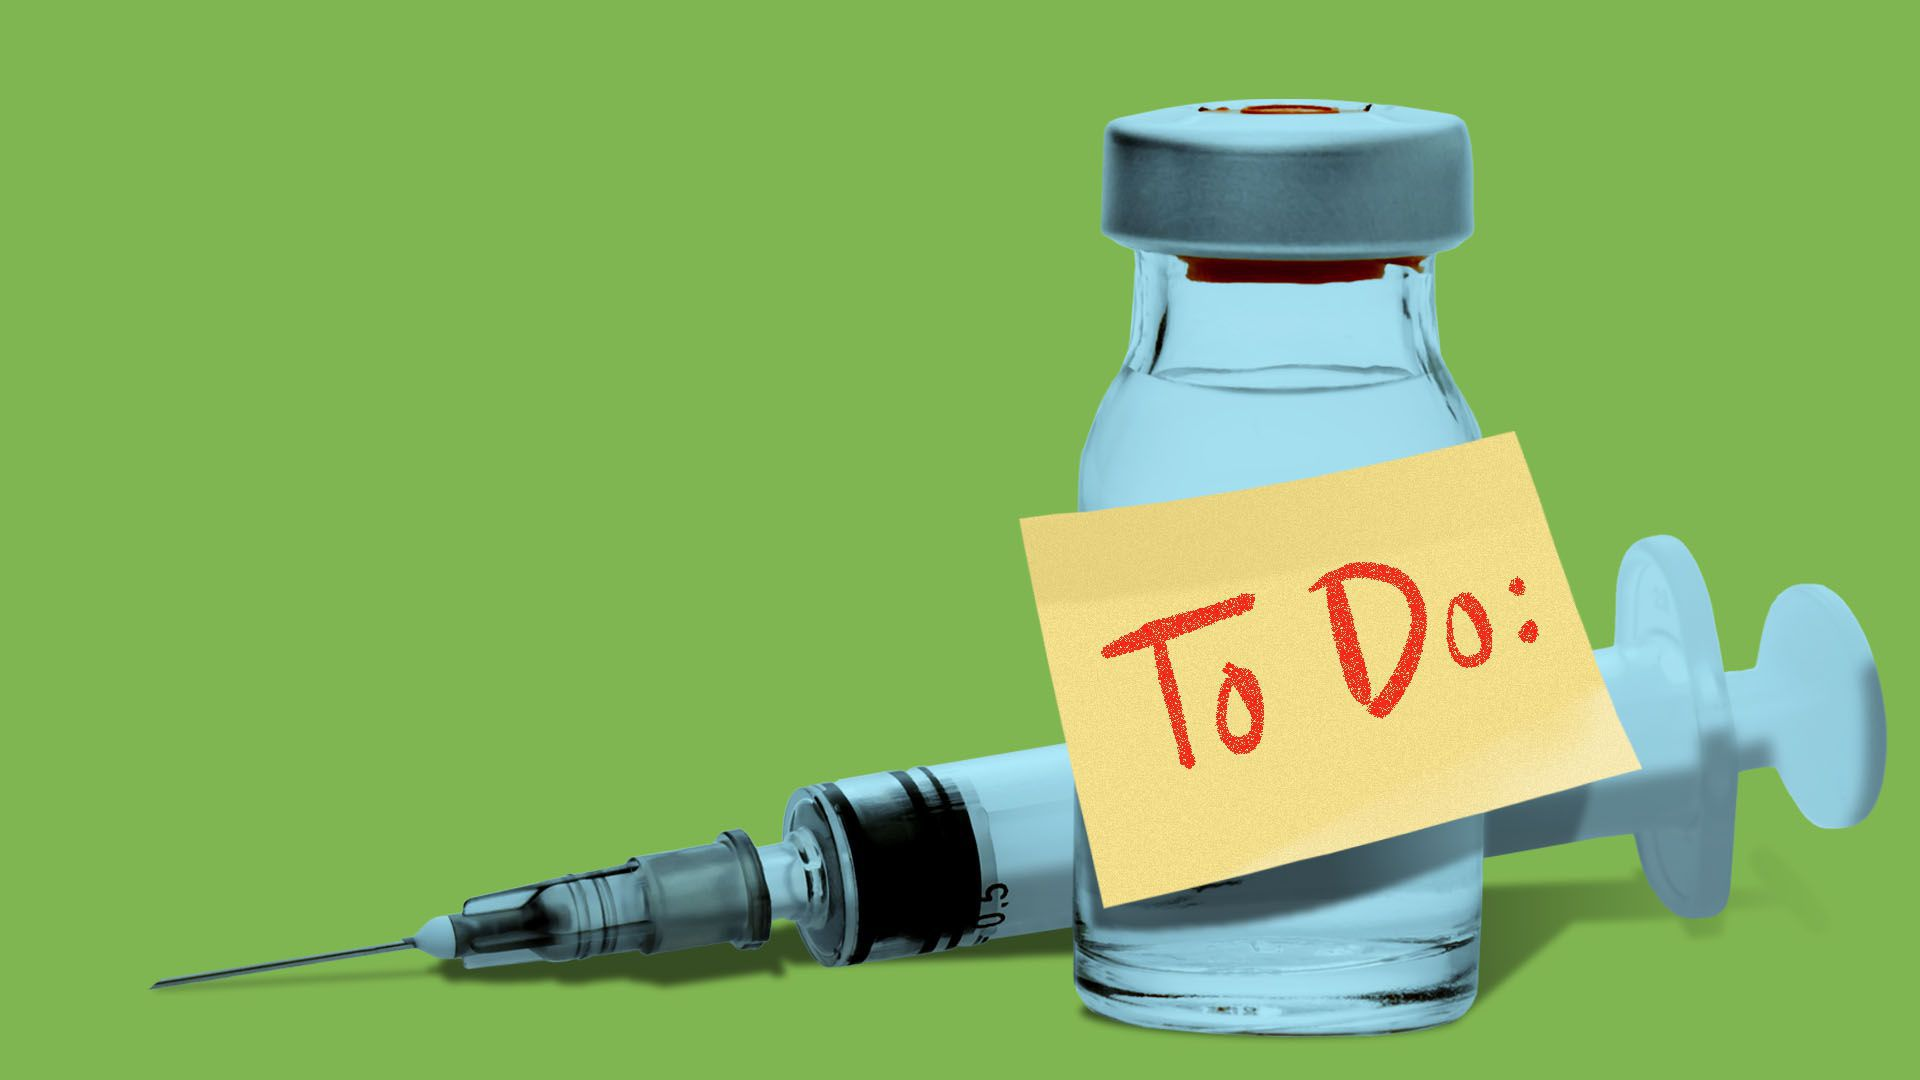 """Illustration of a syringe and glass medicine bottle with a post-it note attached that says """"to do"""""""